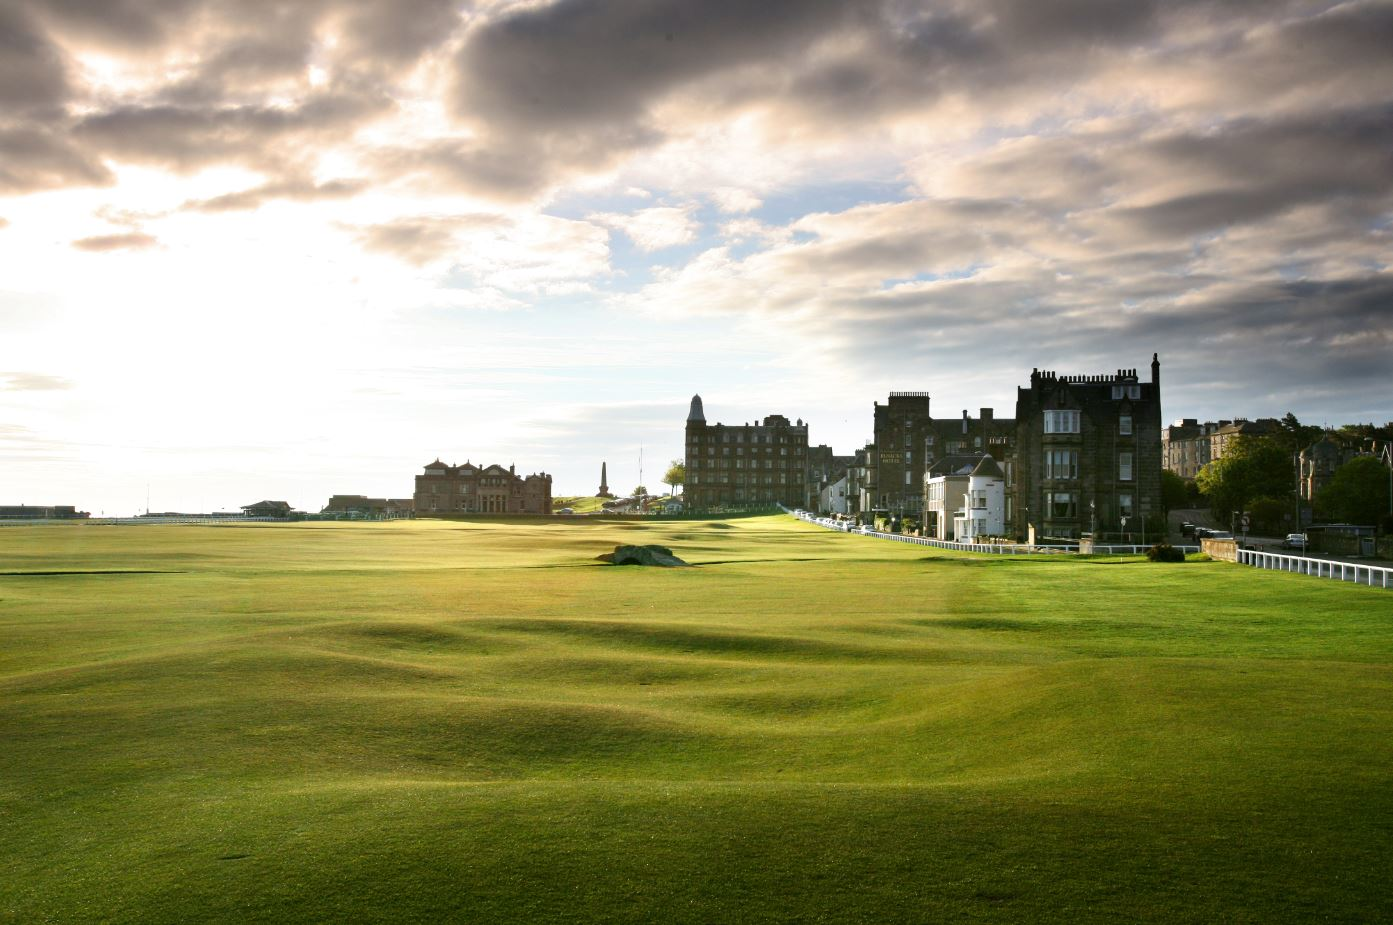 Top international golf courses you should play